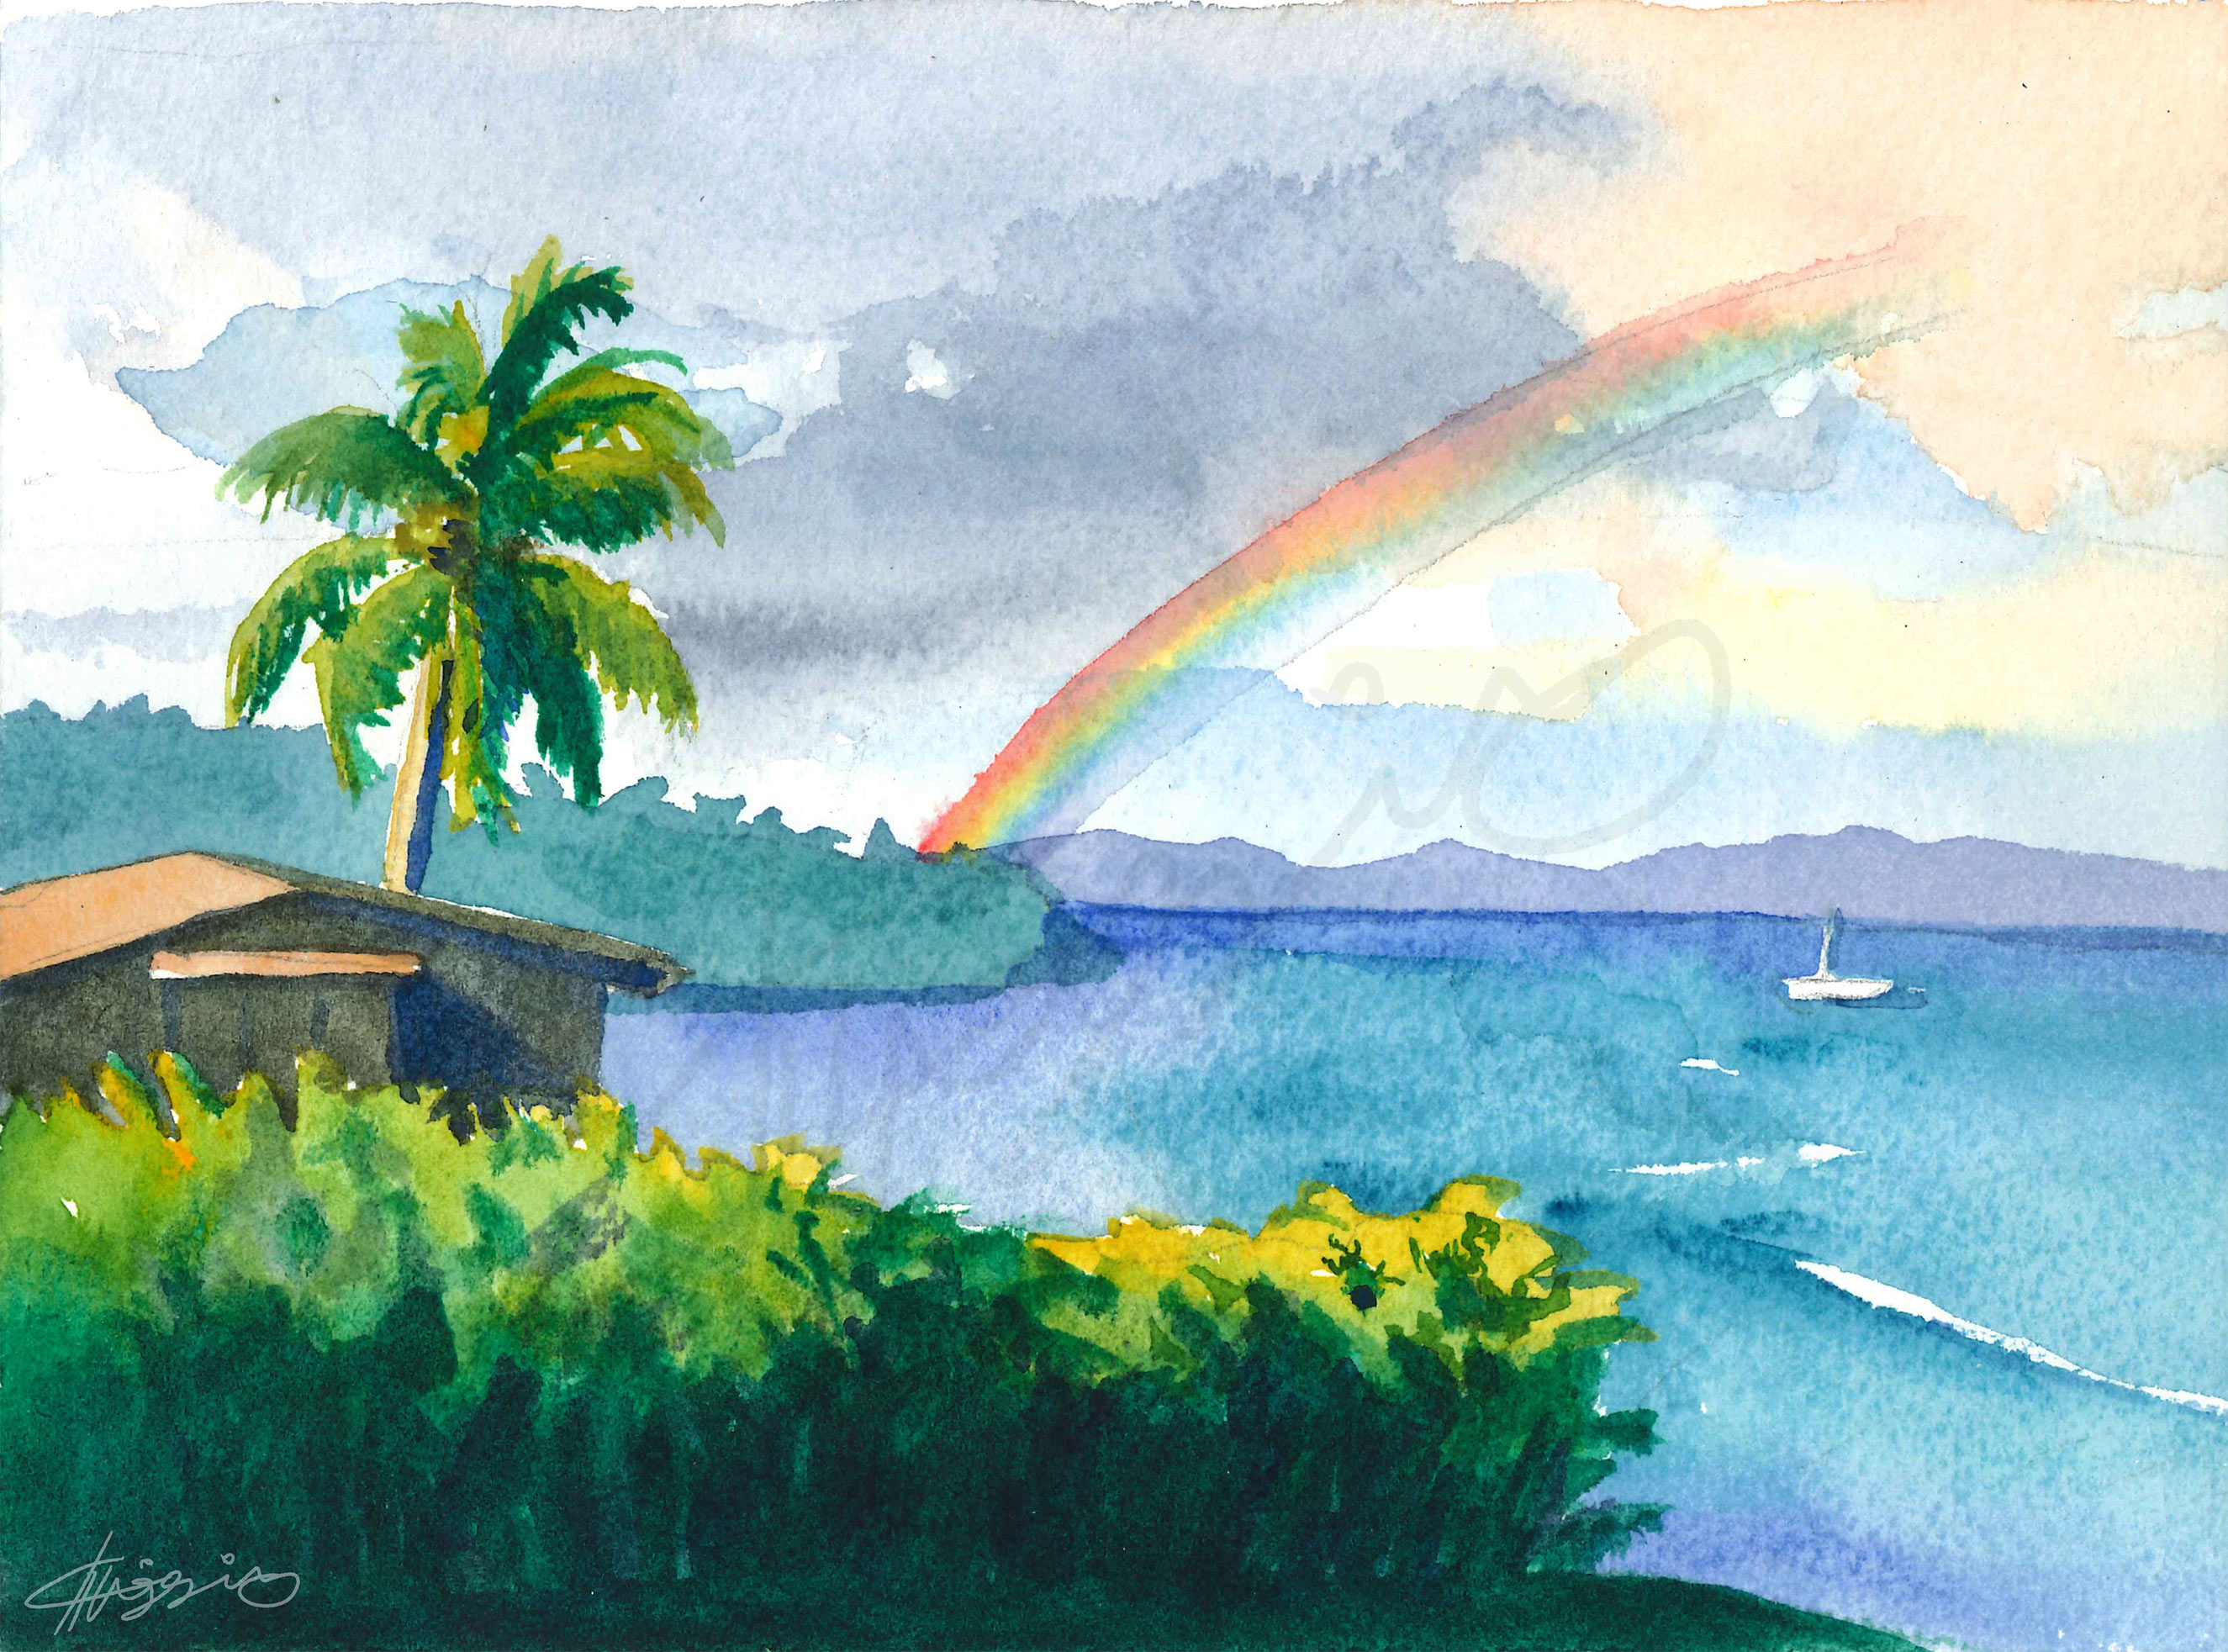 Watercolor painting of a view from Taveuni Island, where a rainbow peeks out ahead of storm clouds over the ocean